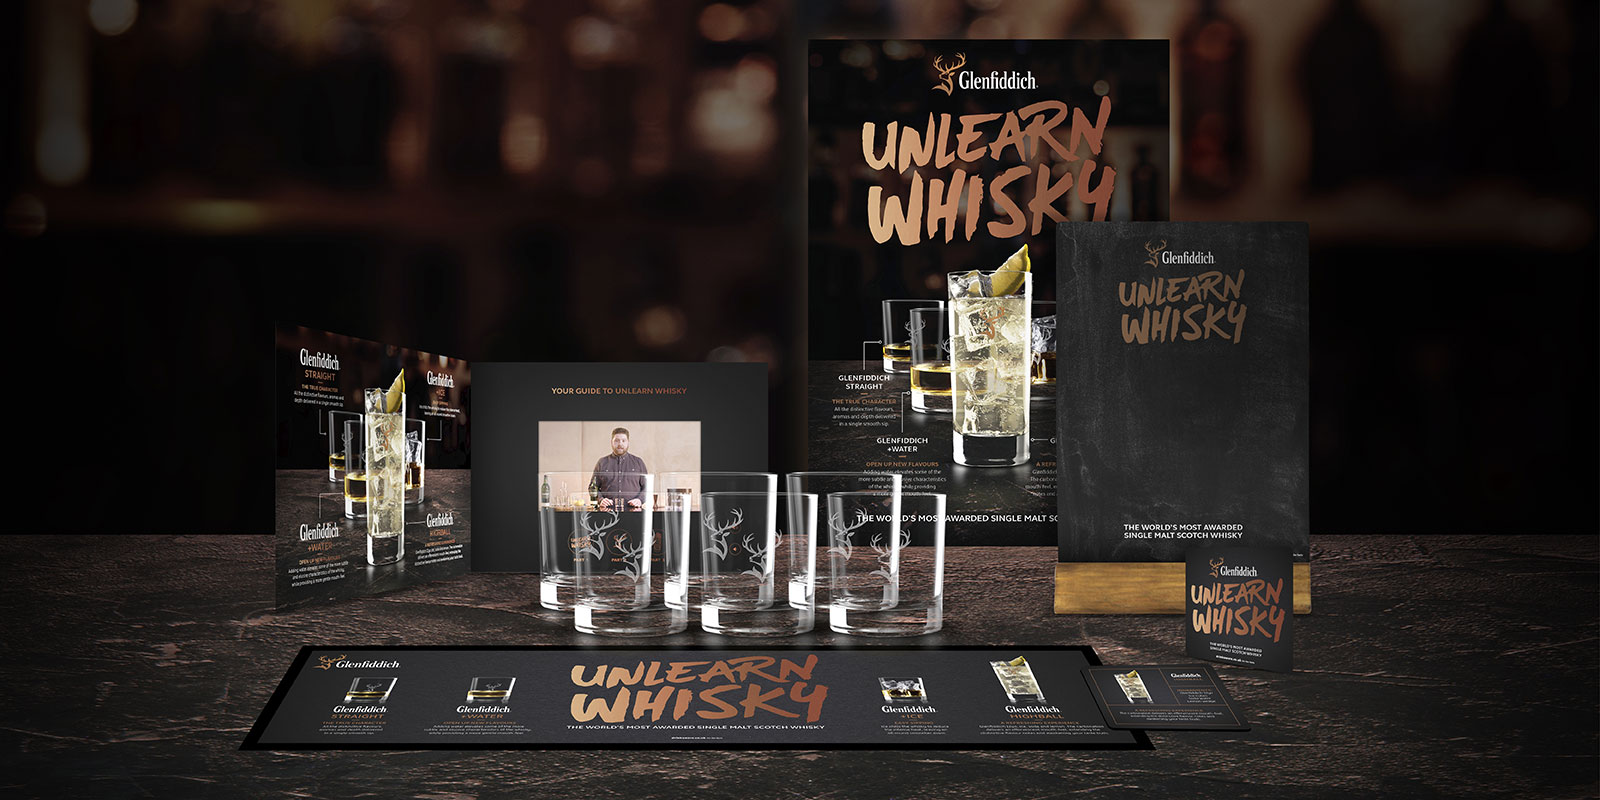 unlearn-whiskey-web-images2